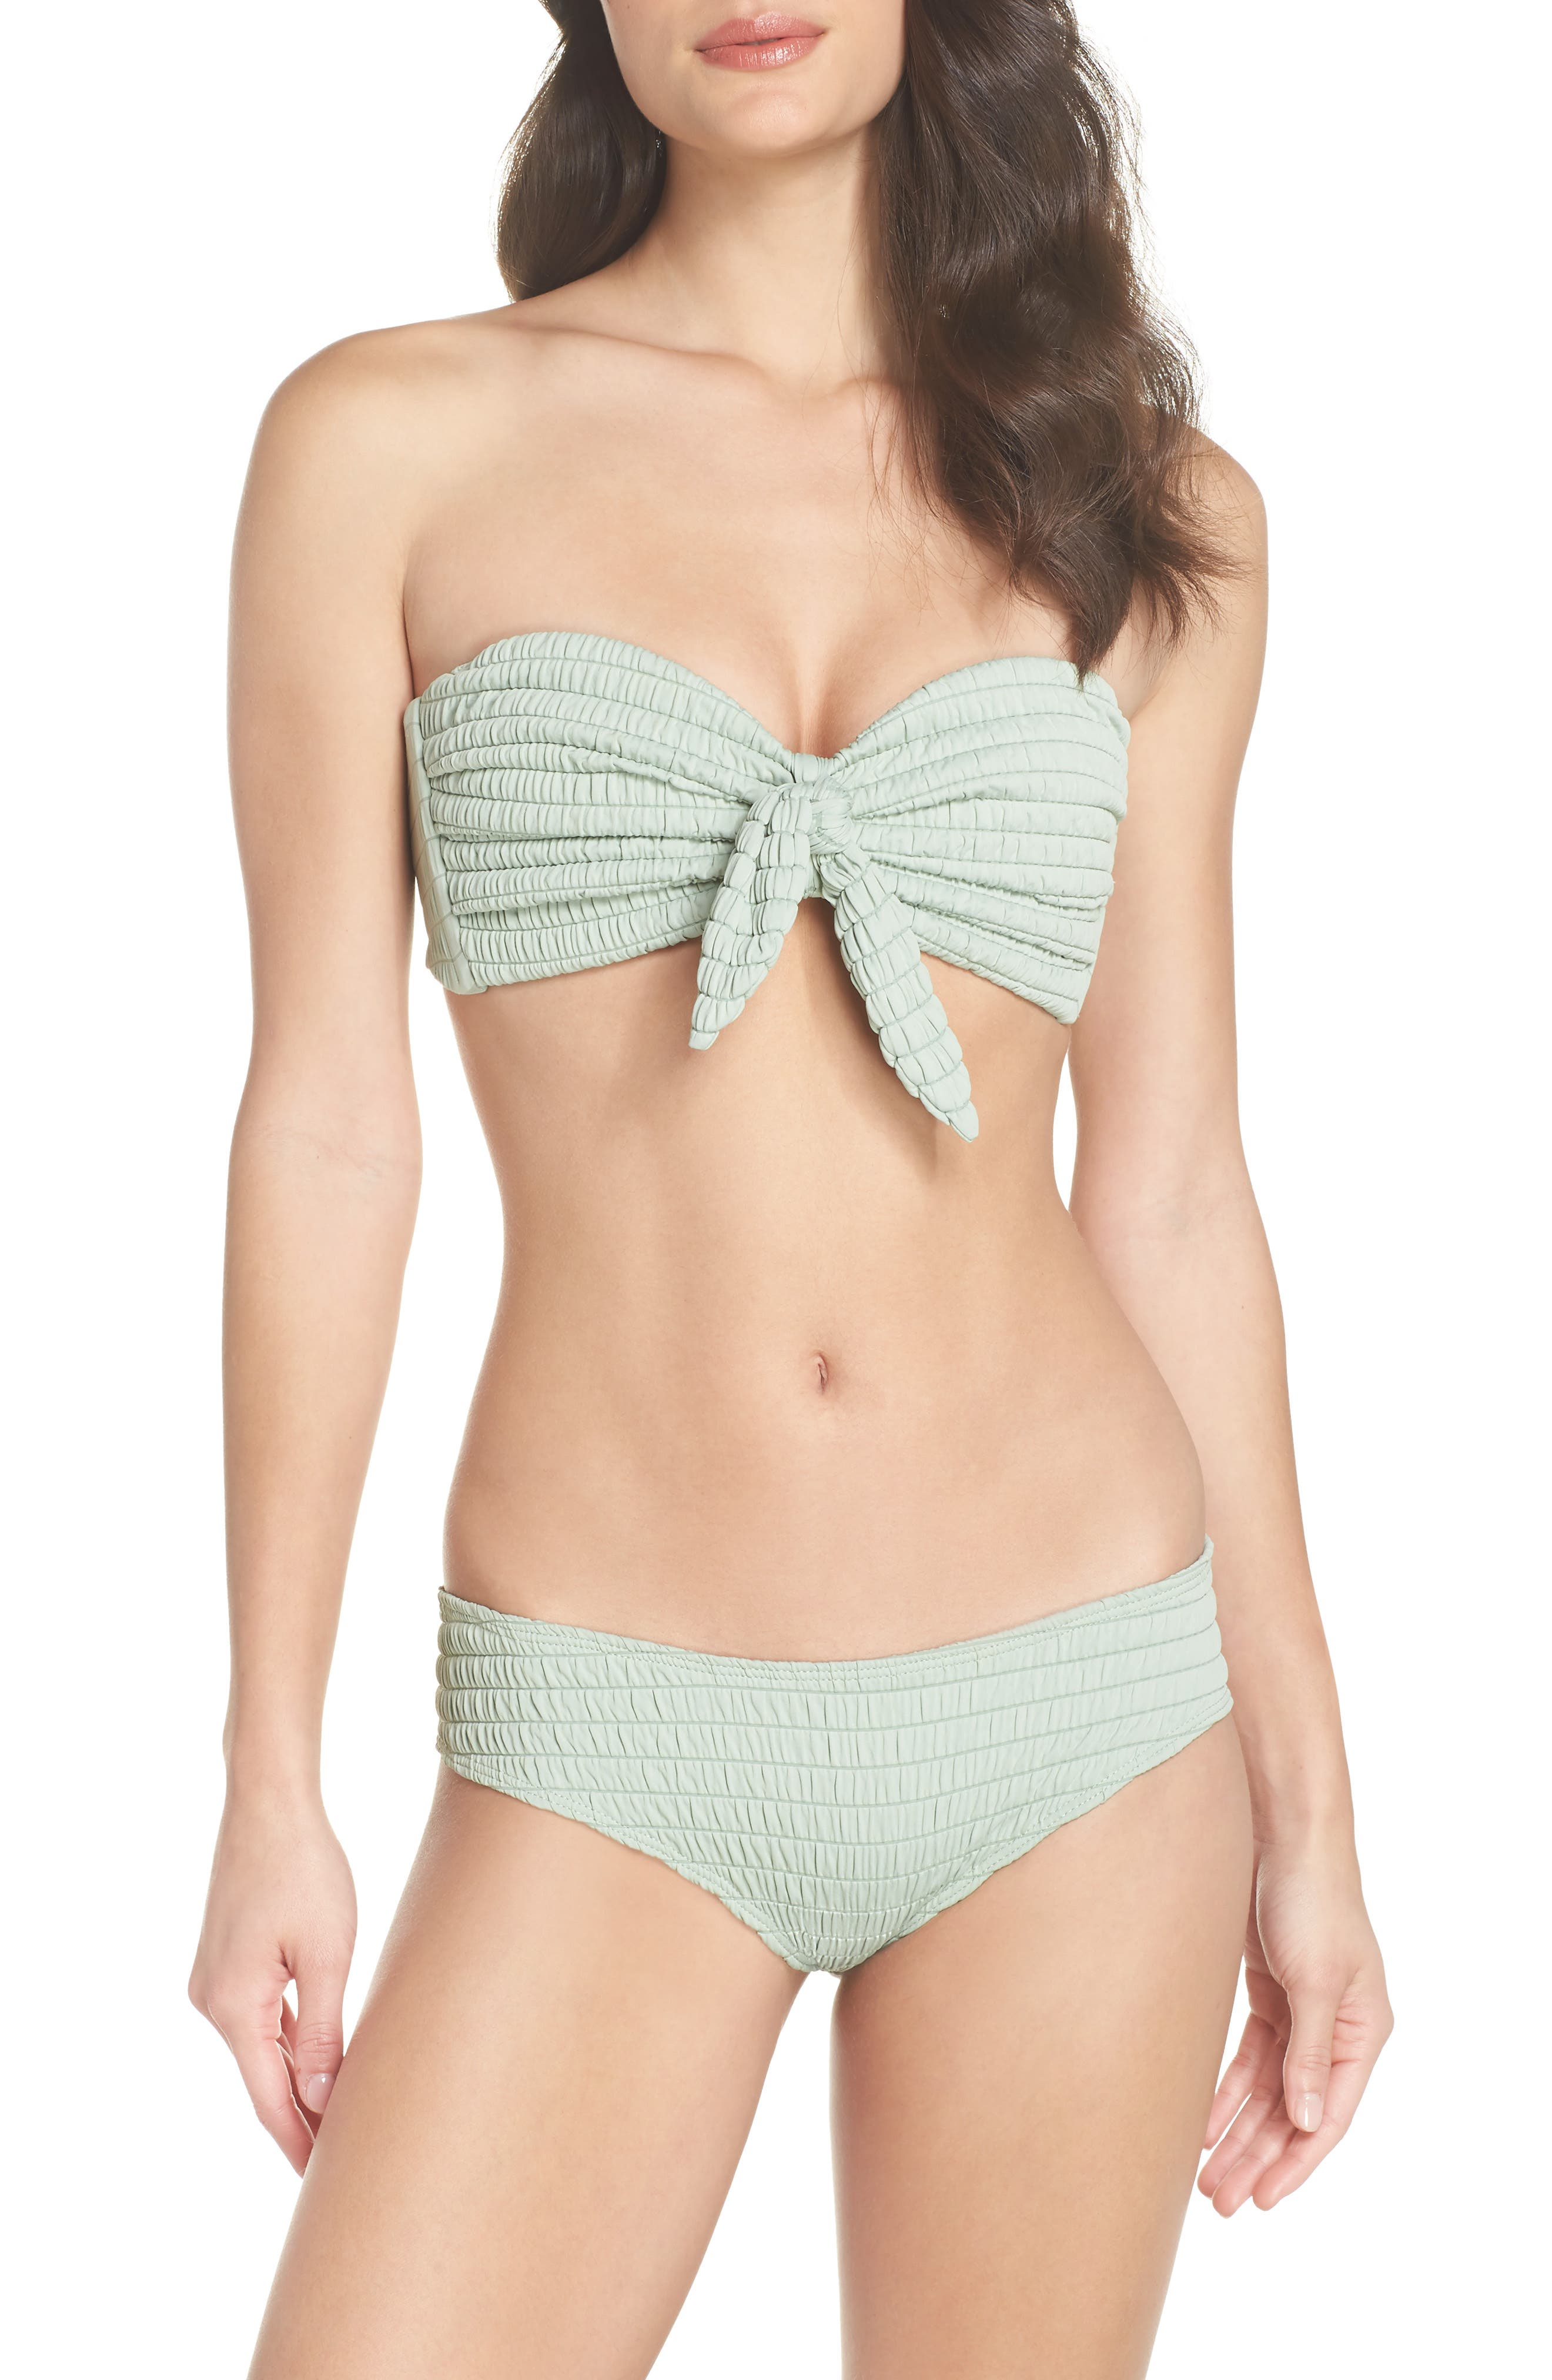 Cabana Tie U-Up Bikini Top,                             Alternate thumbnail 7, color,                             PISTACHE SCRUNCH GREEN